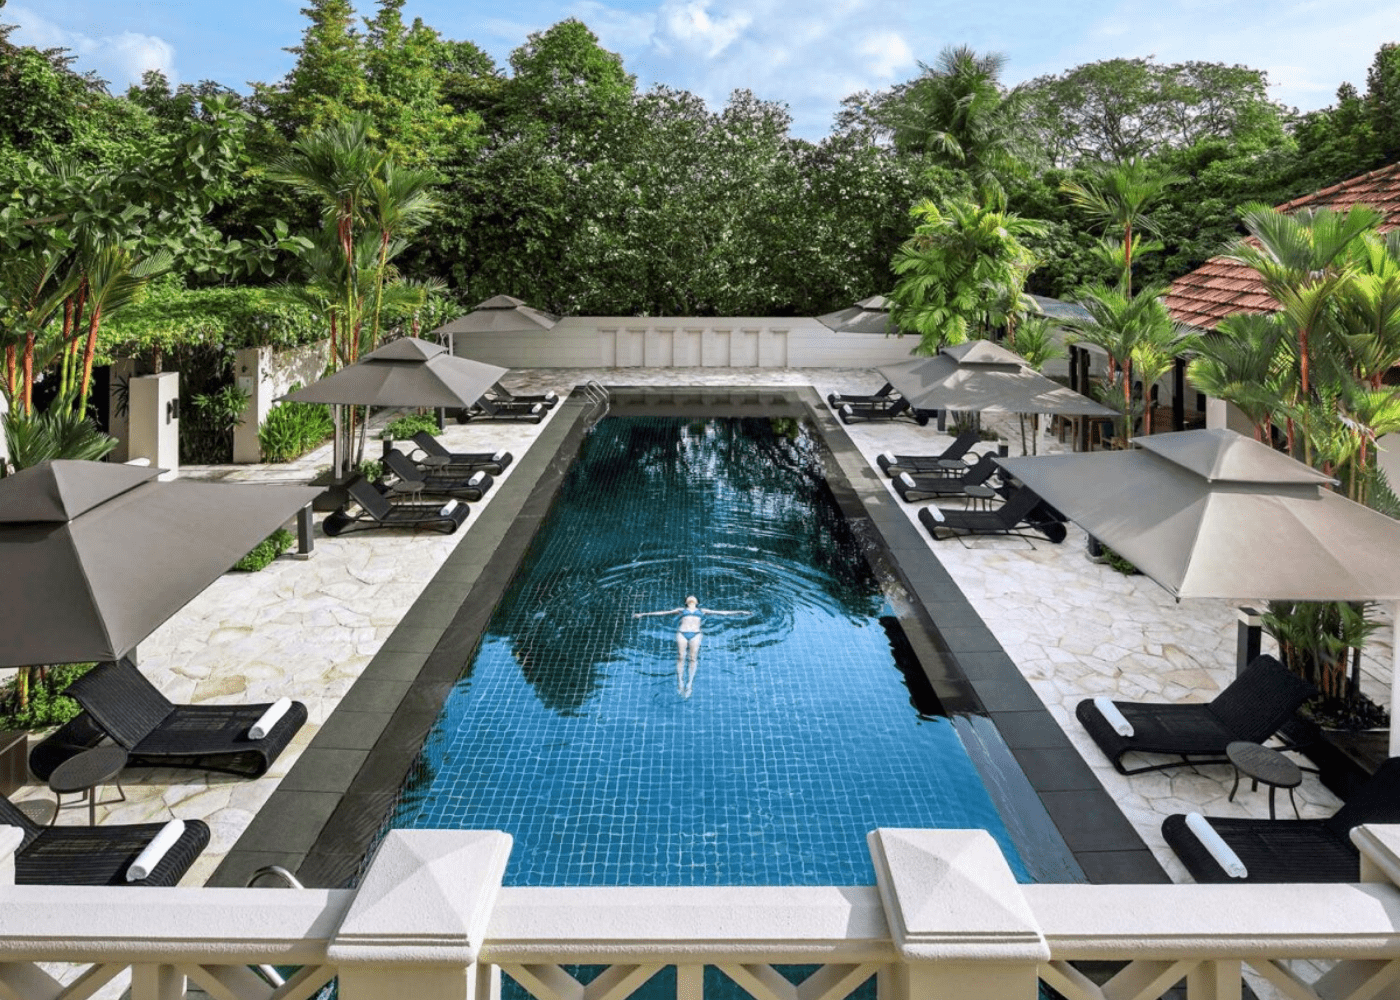 From Japanese onsen to resort vibes: Bliss out at Singapore's best spas